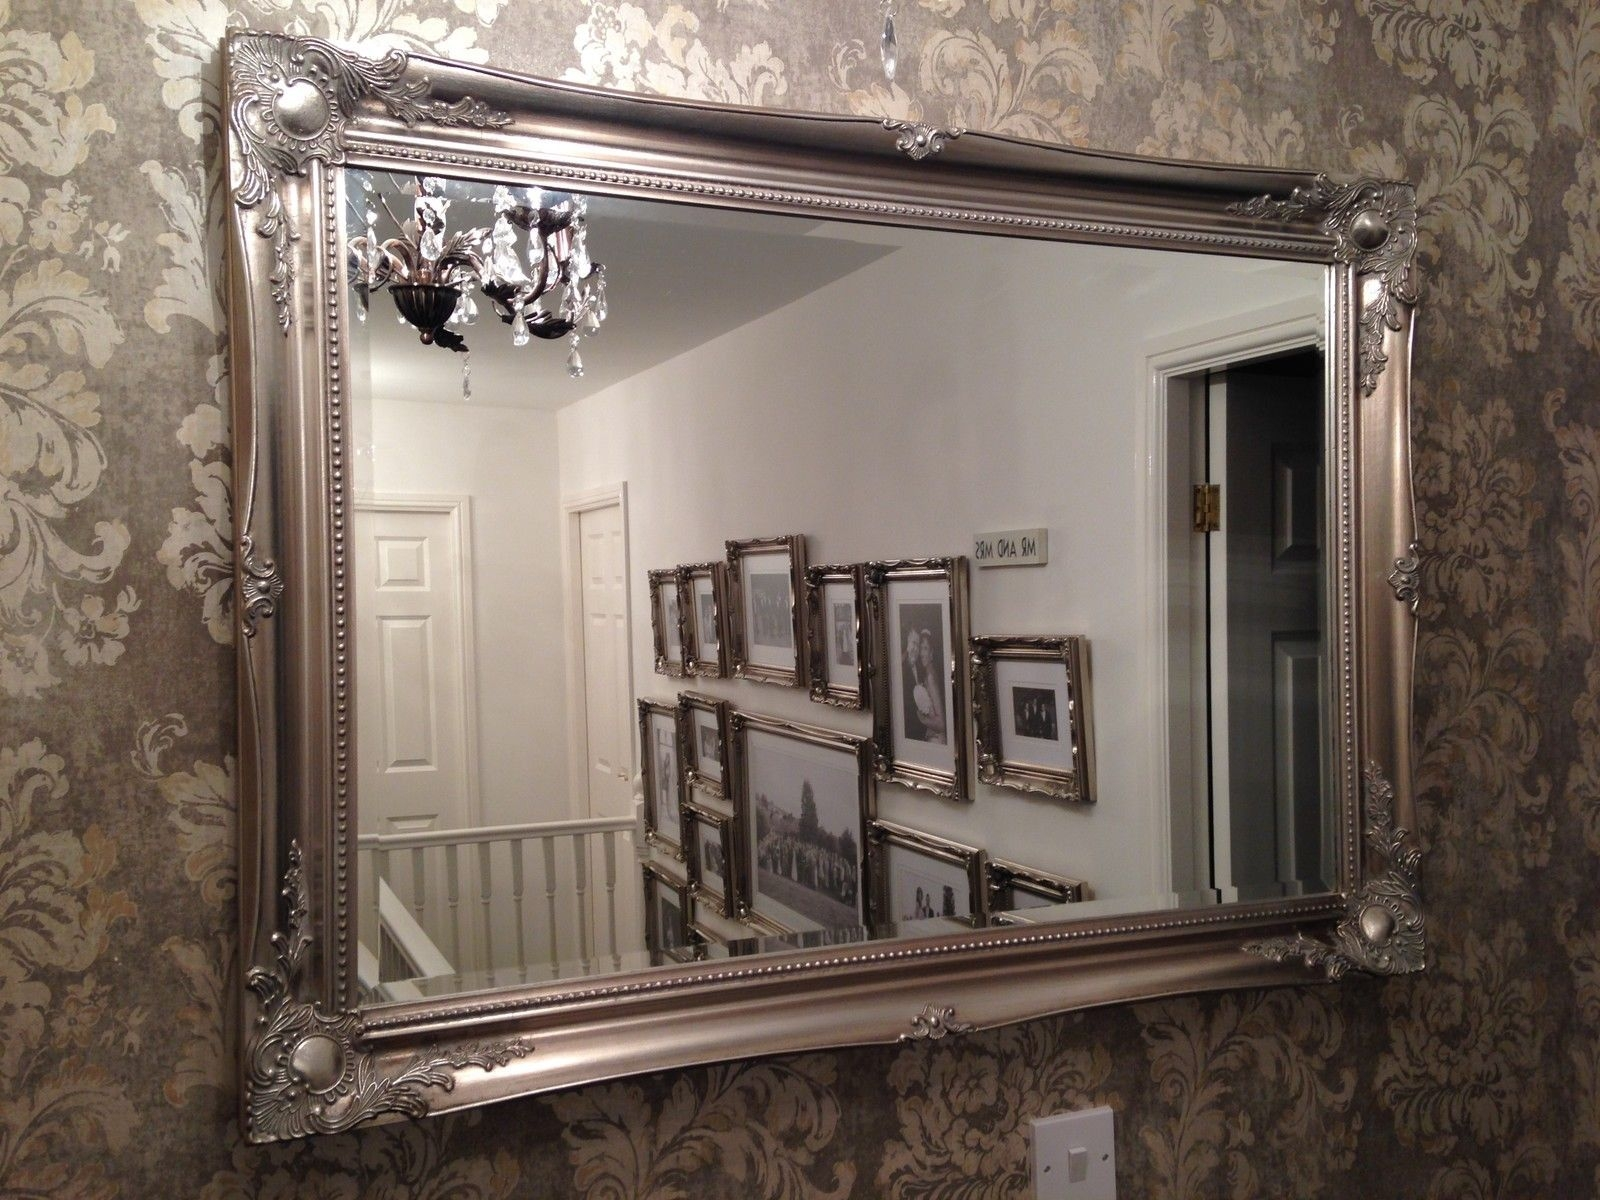 For Sale 20 Large Designer Wall Mirrors On Mirrors Decorative With Designer Mirrors For Sale (Image 9 of 15)